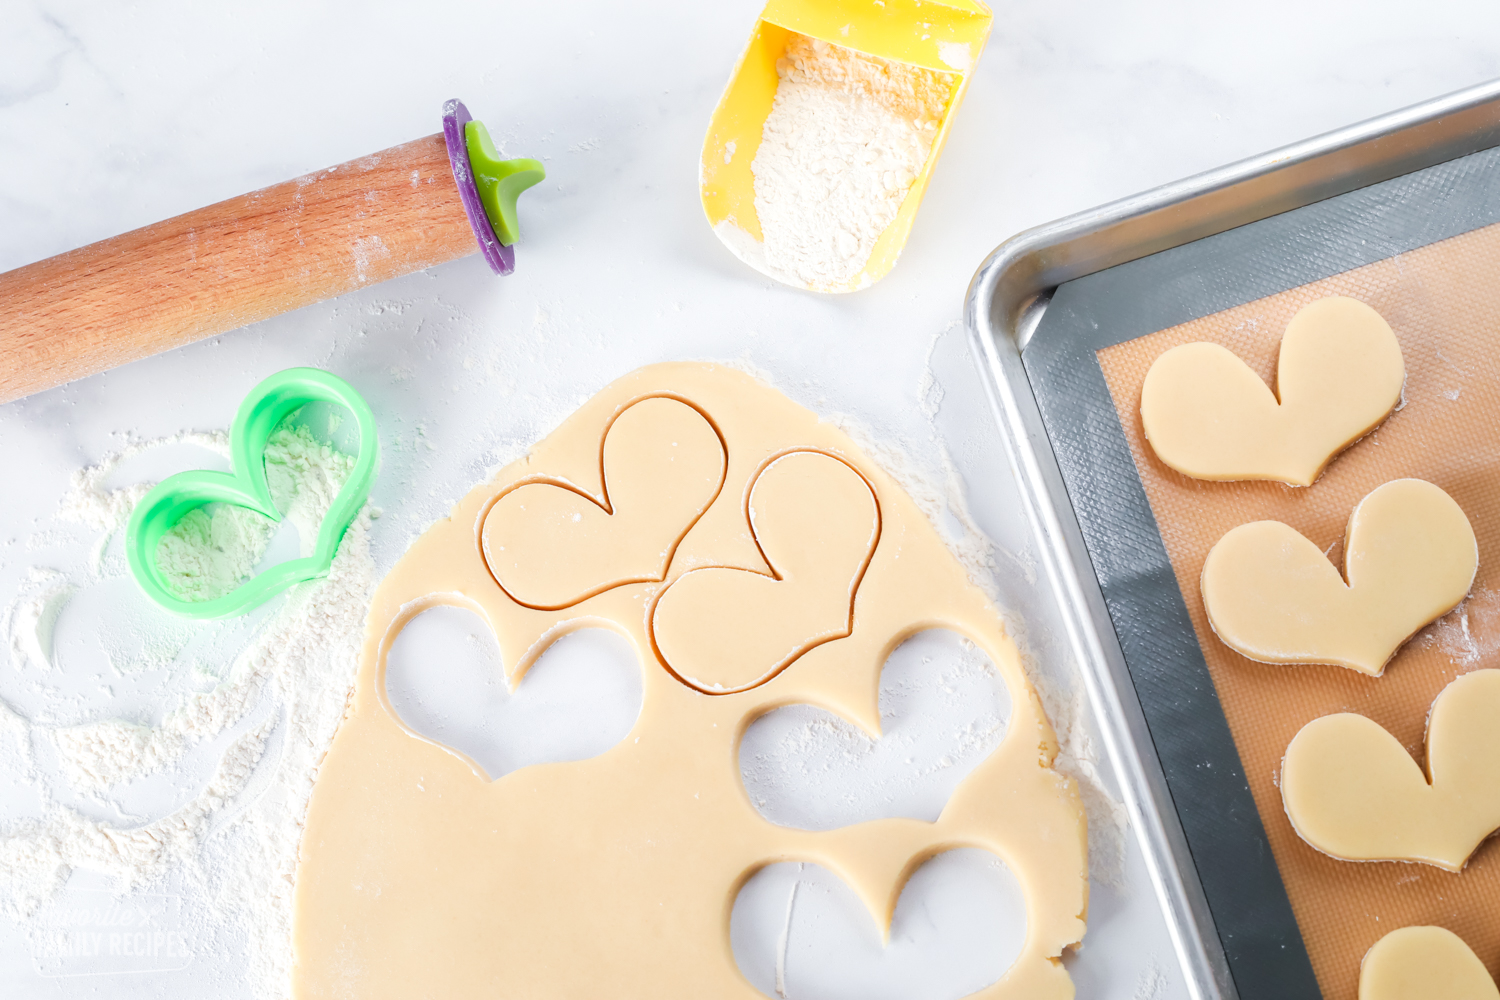 Sugar cookie dough with cut out cookies and places on a baking sheet